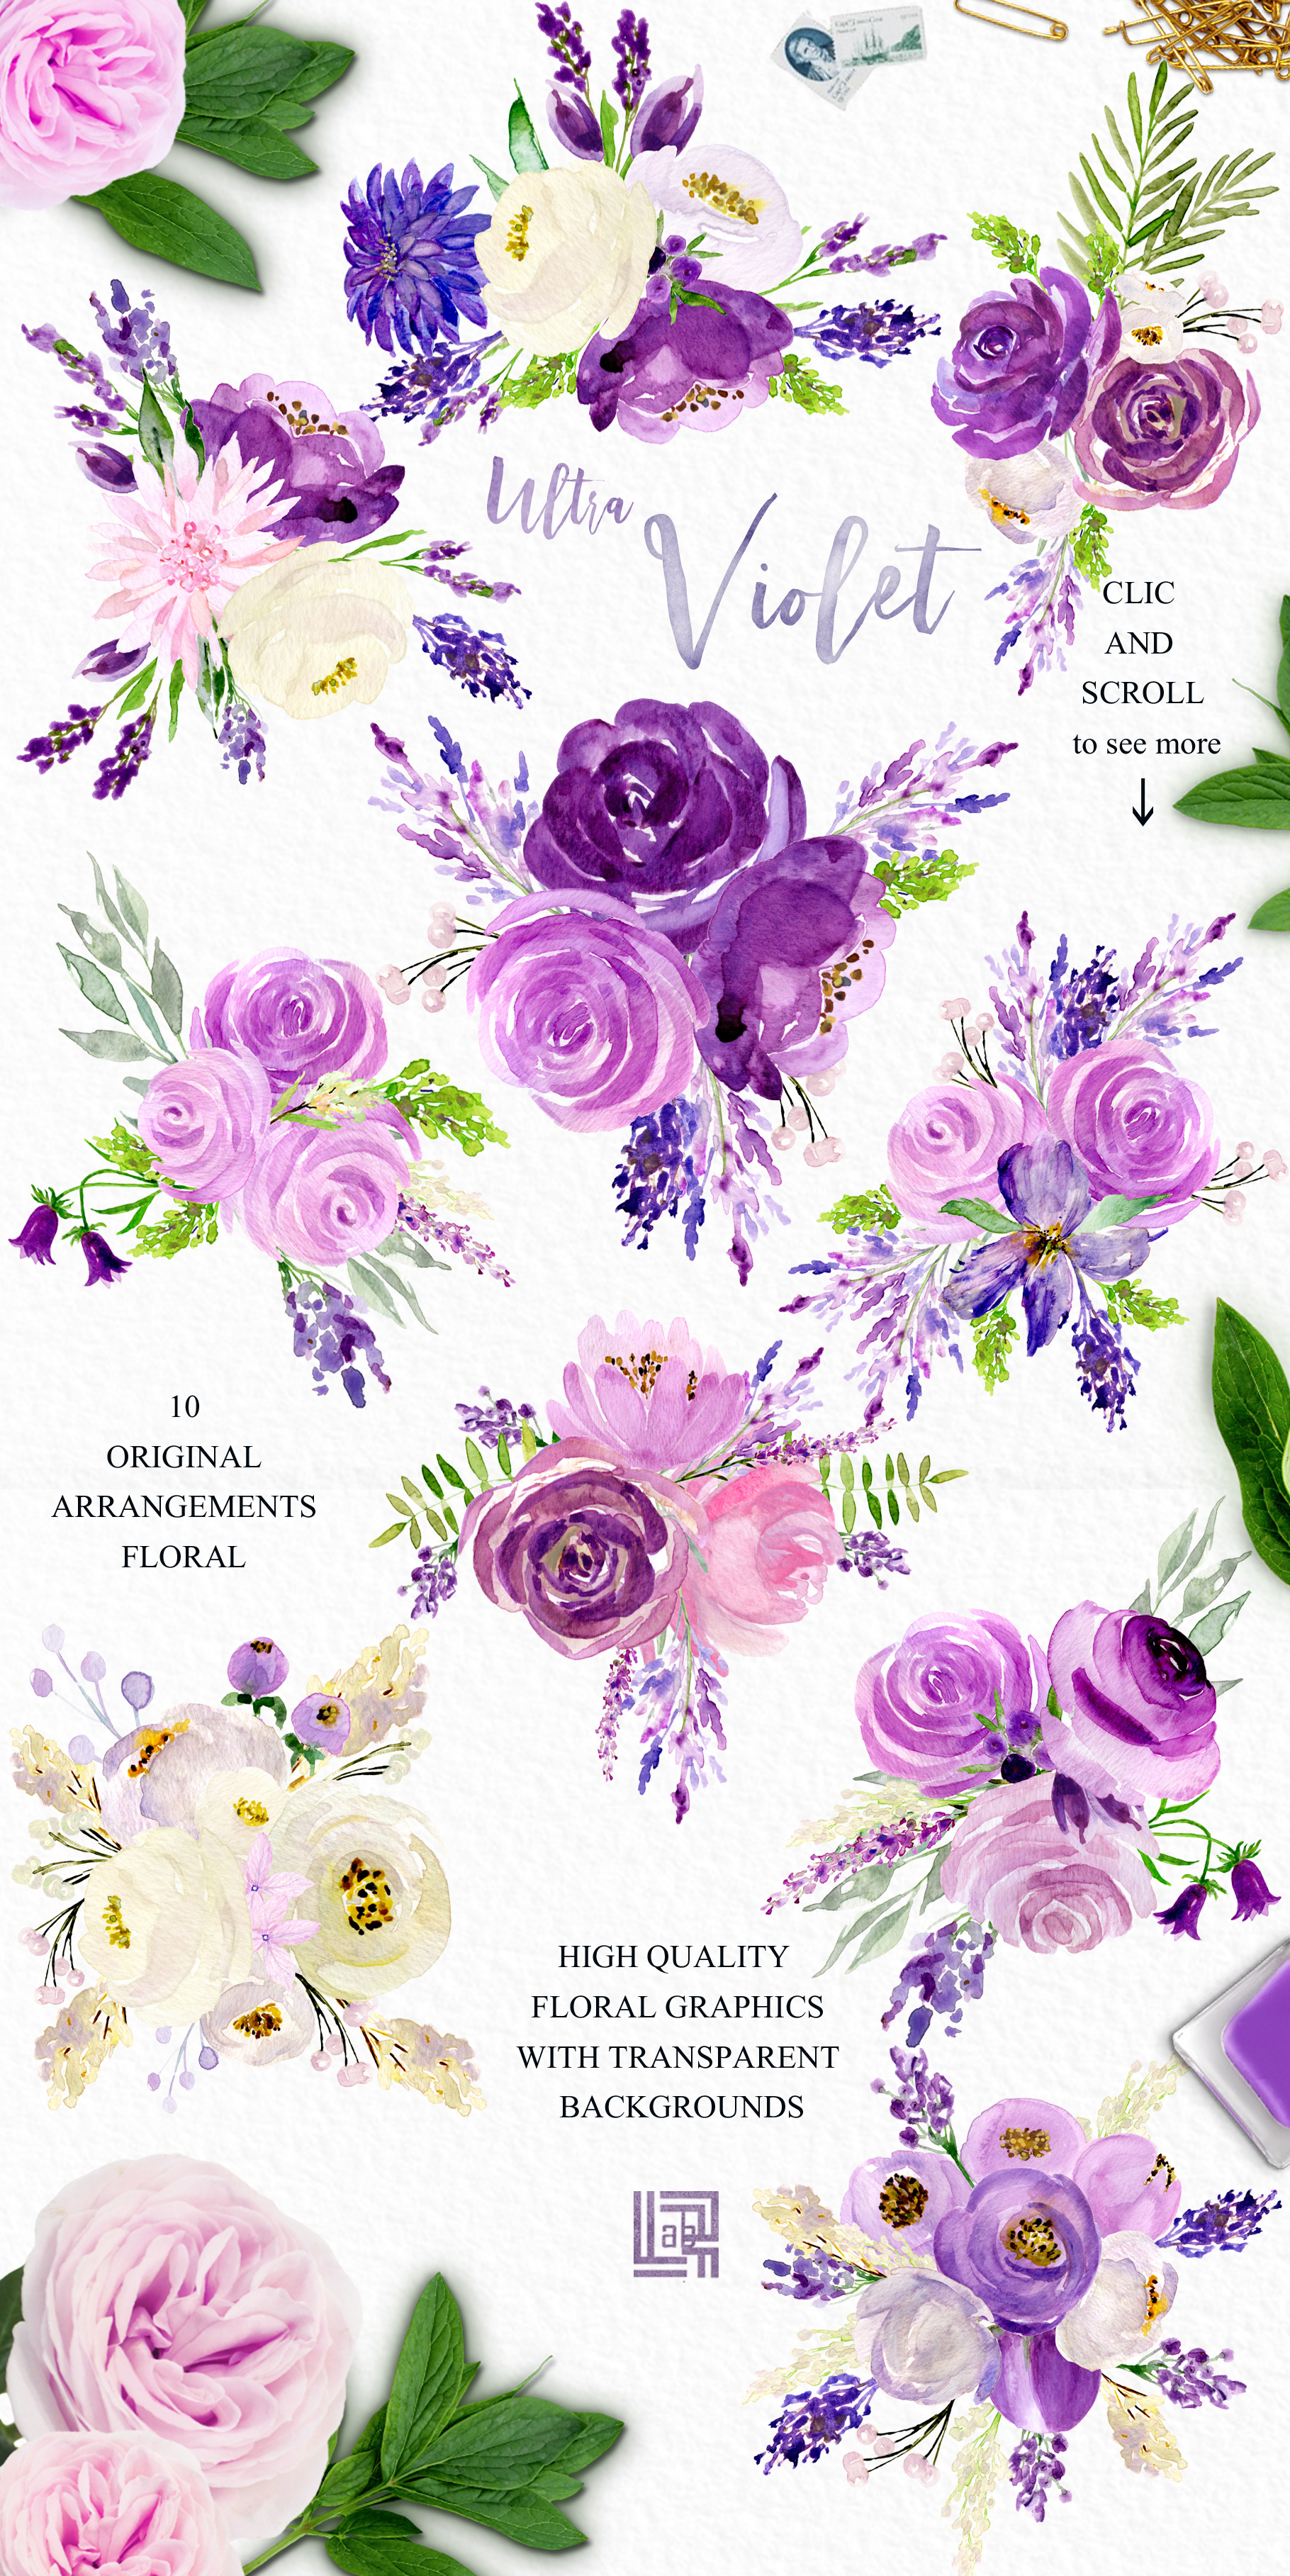 Ultra violet watercolor flowers example image 6